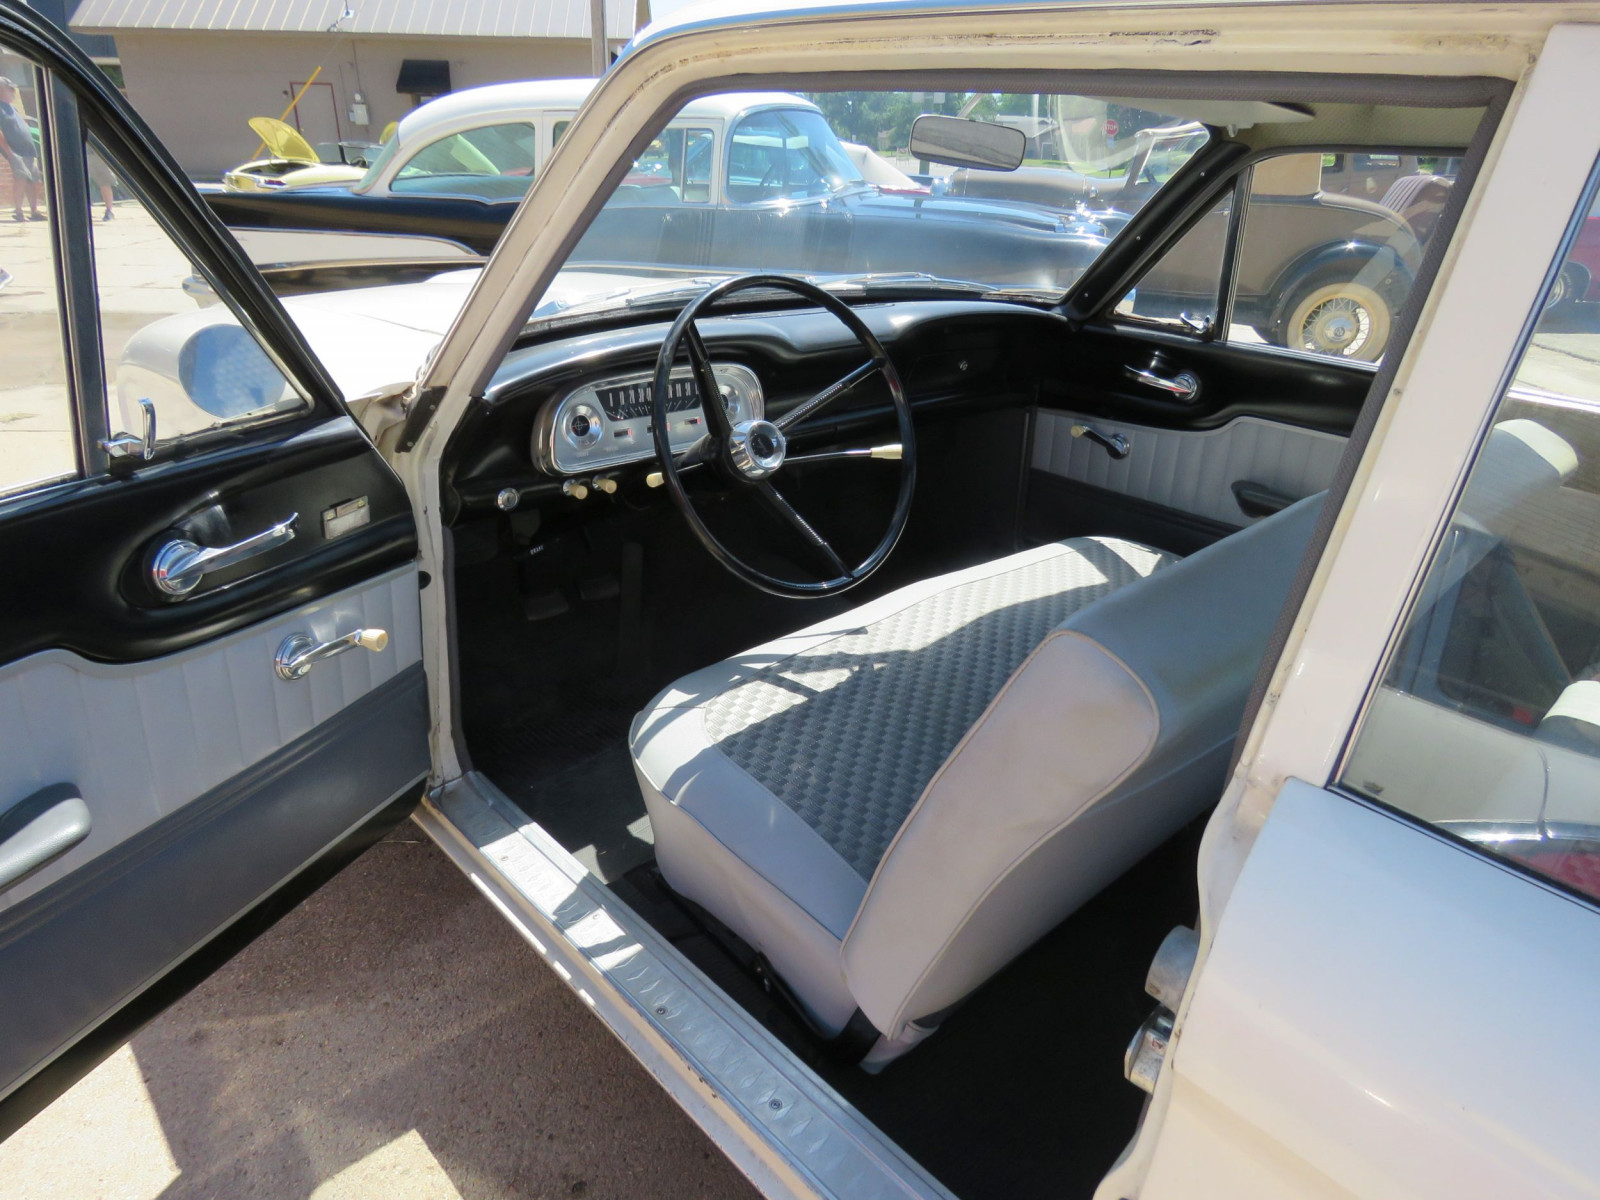 1961 FORD FALCON 2DR SEDAN LESS THAN 10,000 MILES - Image 15